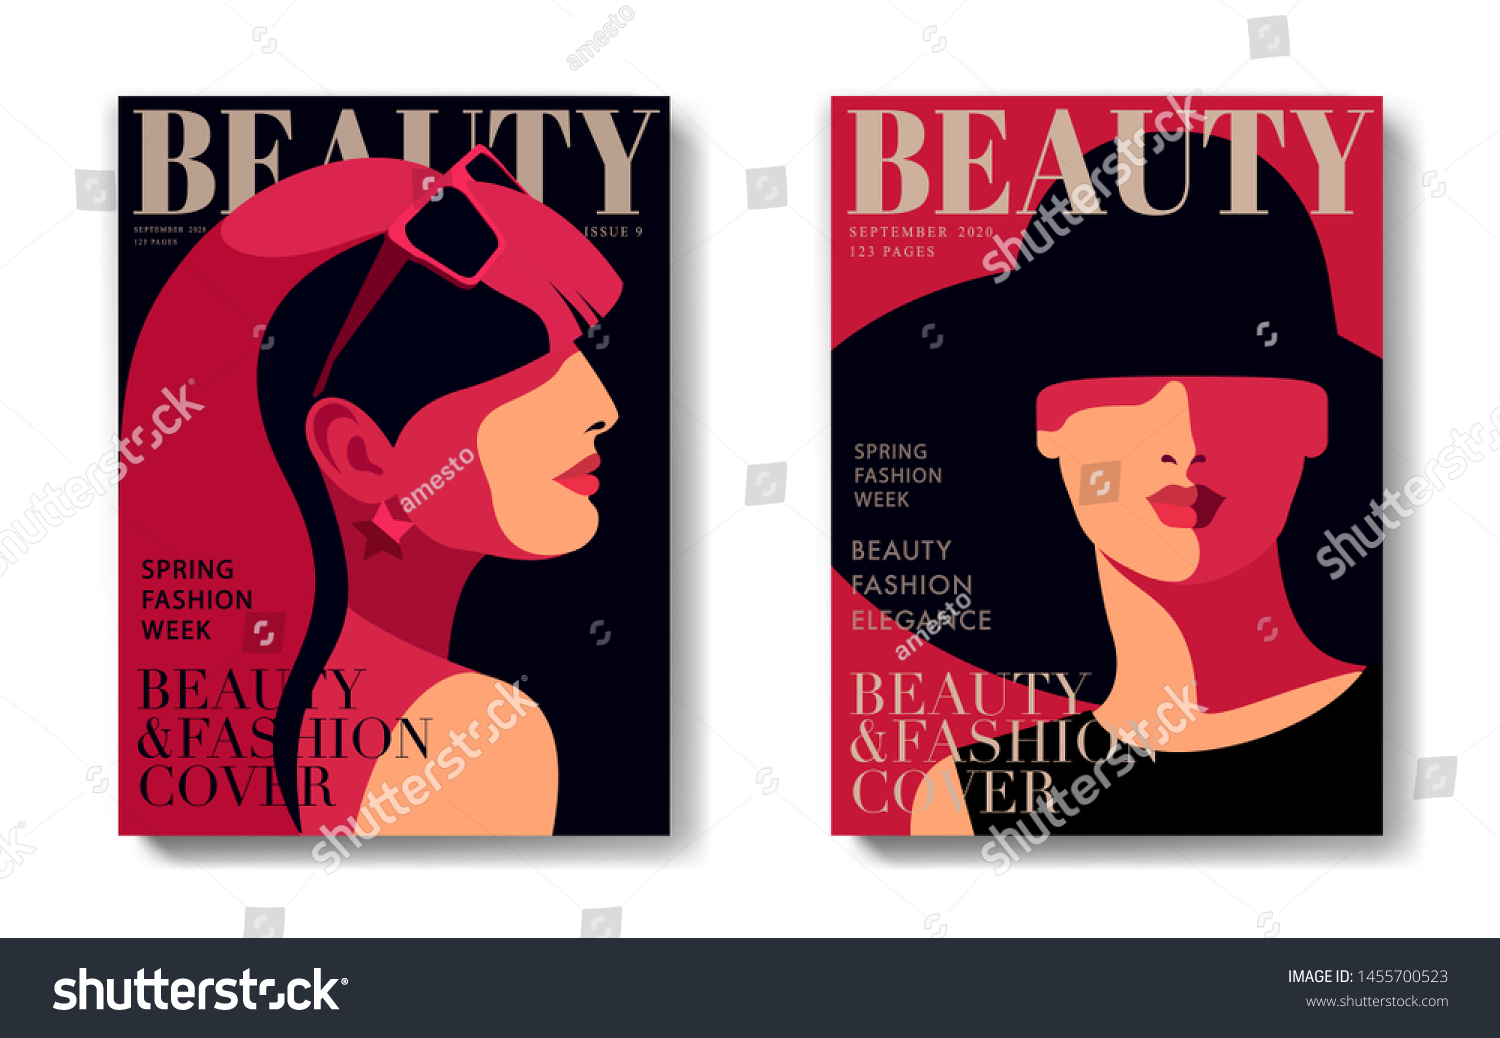 Two Fashion Magazine Cover Designs Abstract Stock Vector Royalty Free 1455700523